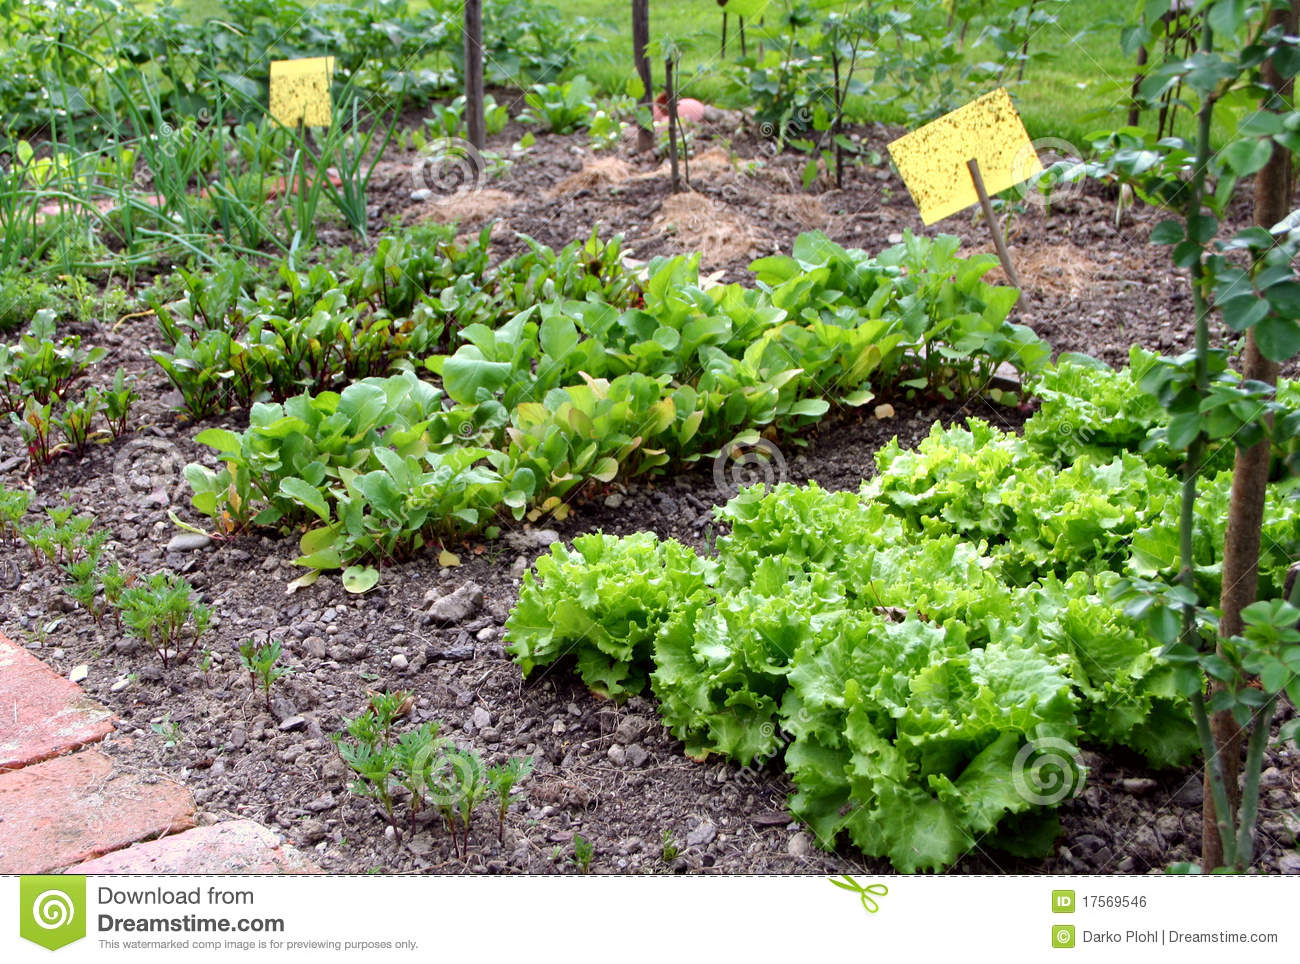 Backyard Vegetable Garden Business : Small garden vegetable bed and yellow pest control table in the